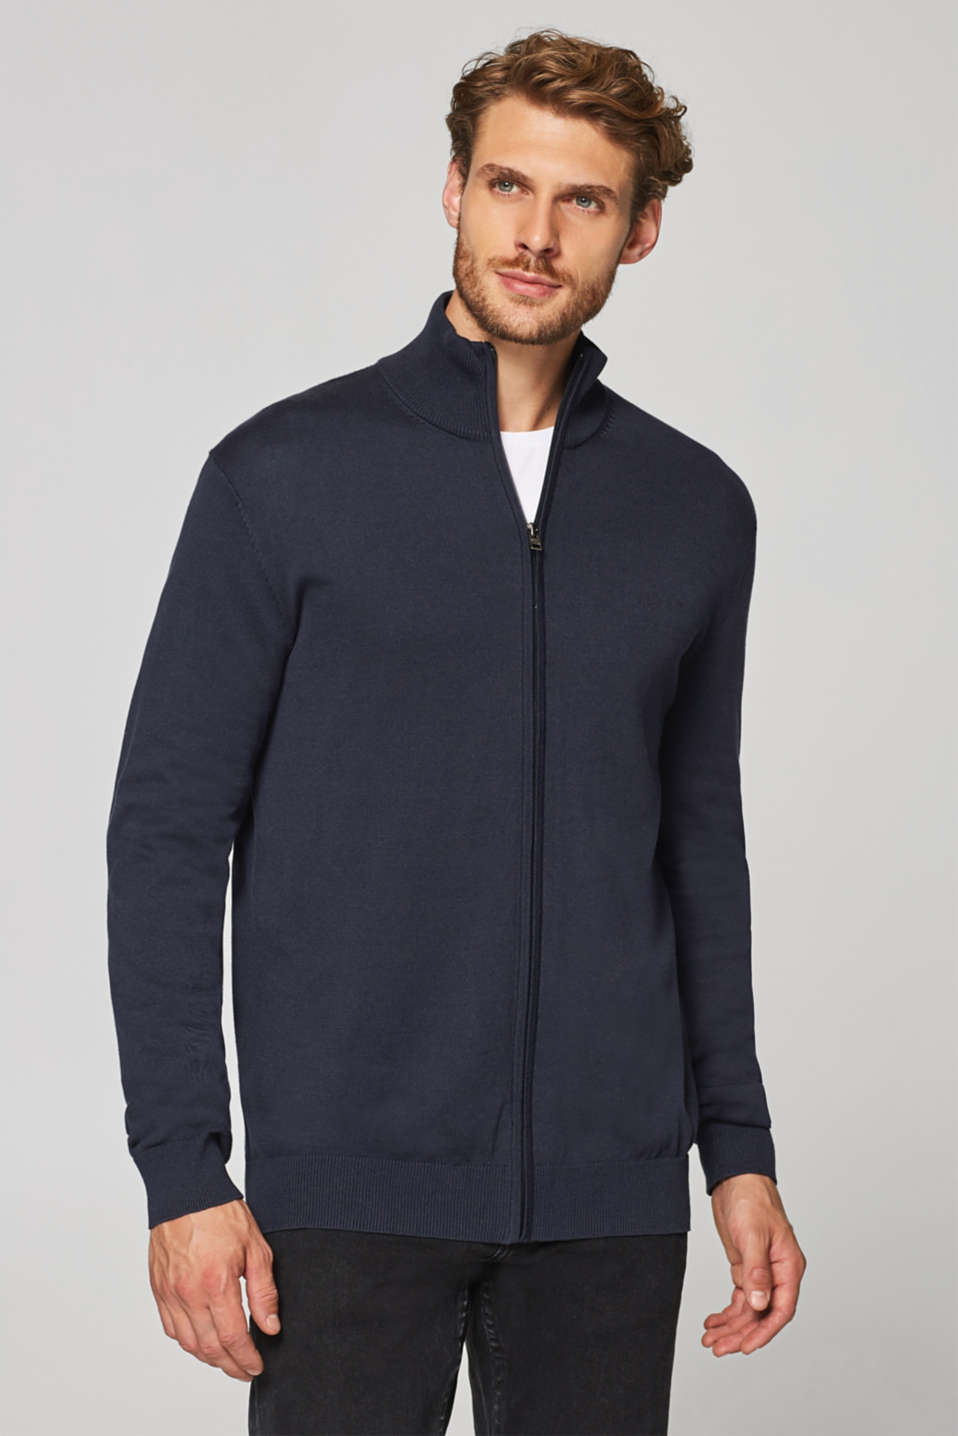 Esprit - Fine knit cardigan in 100% cotton